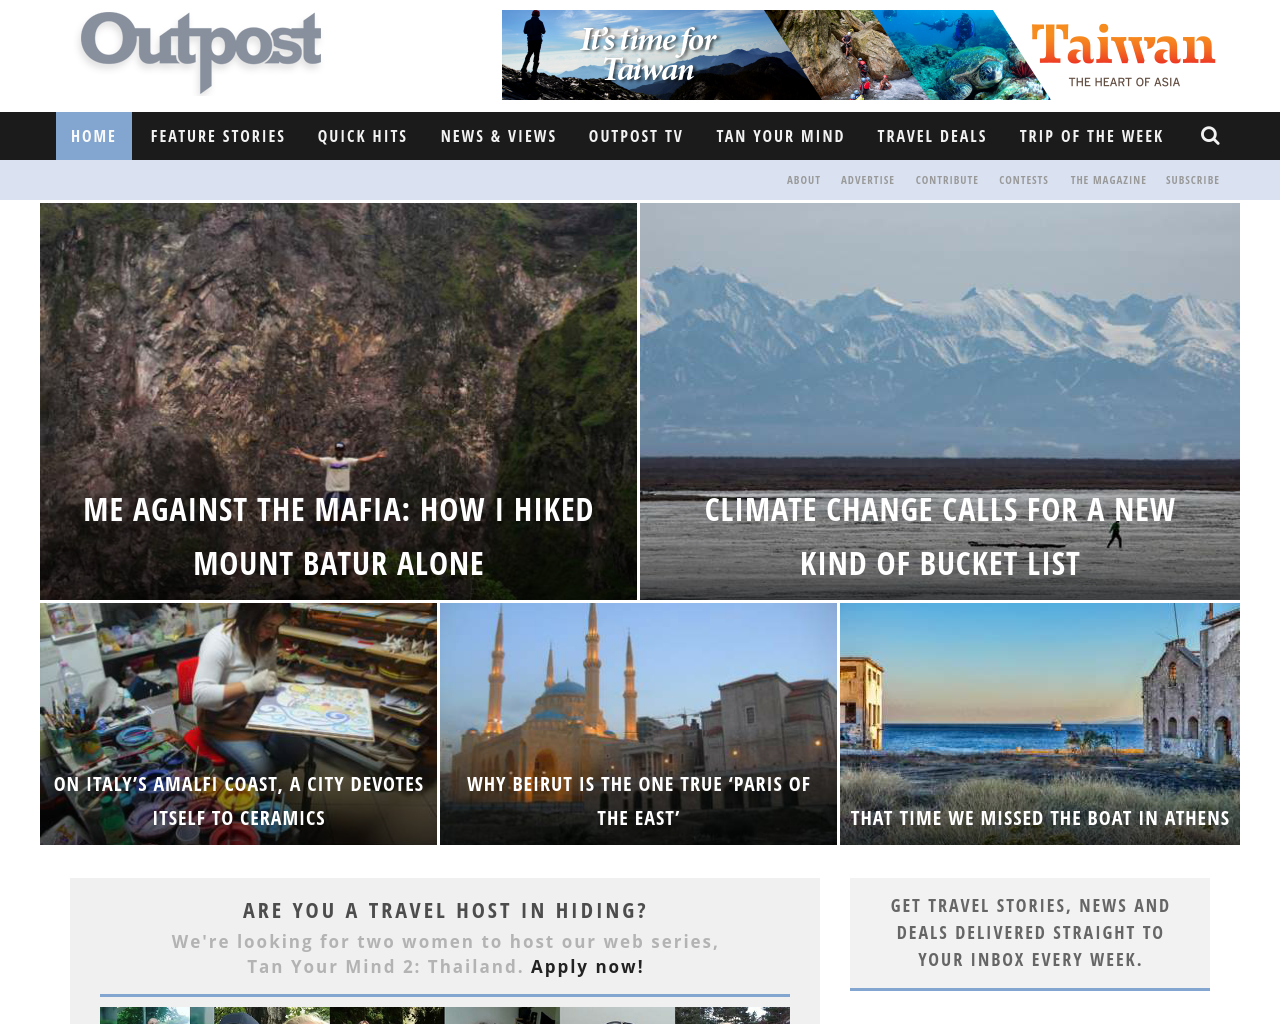 Outpost-Magazine-Advertising-Reviews-Pricing